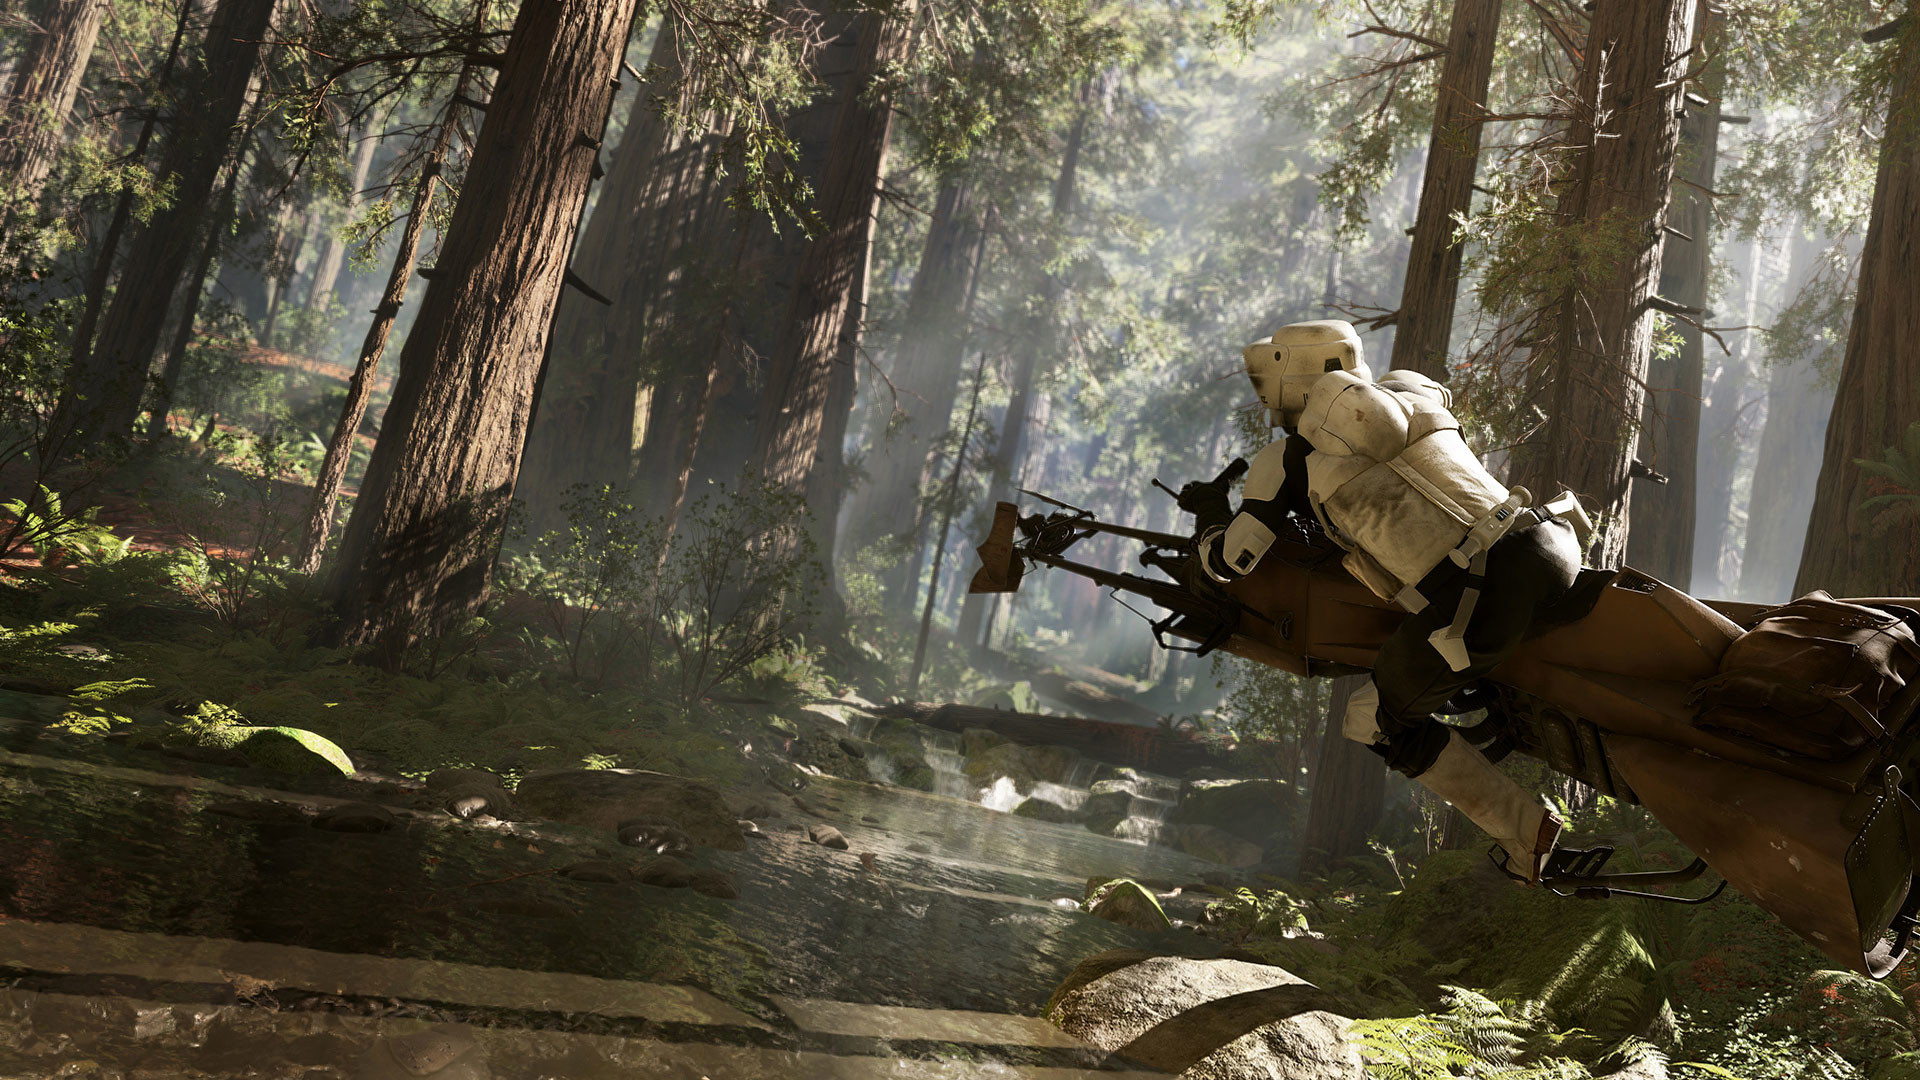 Wallpaper in 1080p from the Star Wars Battlefront webpage.